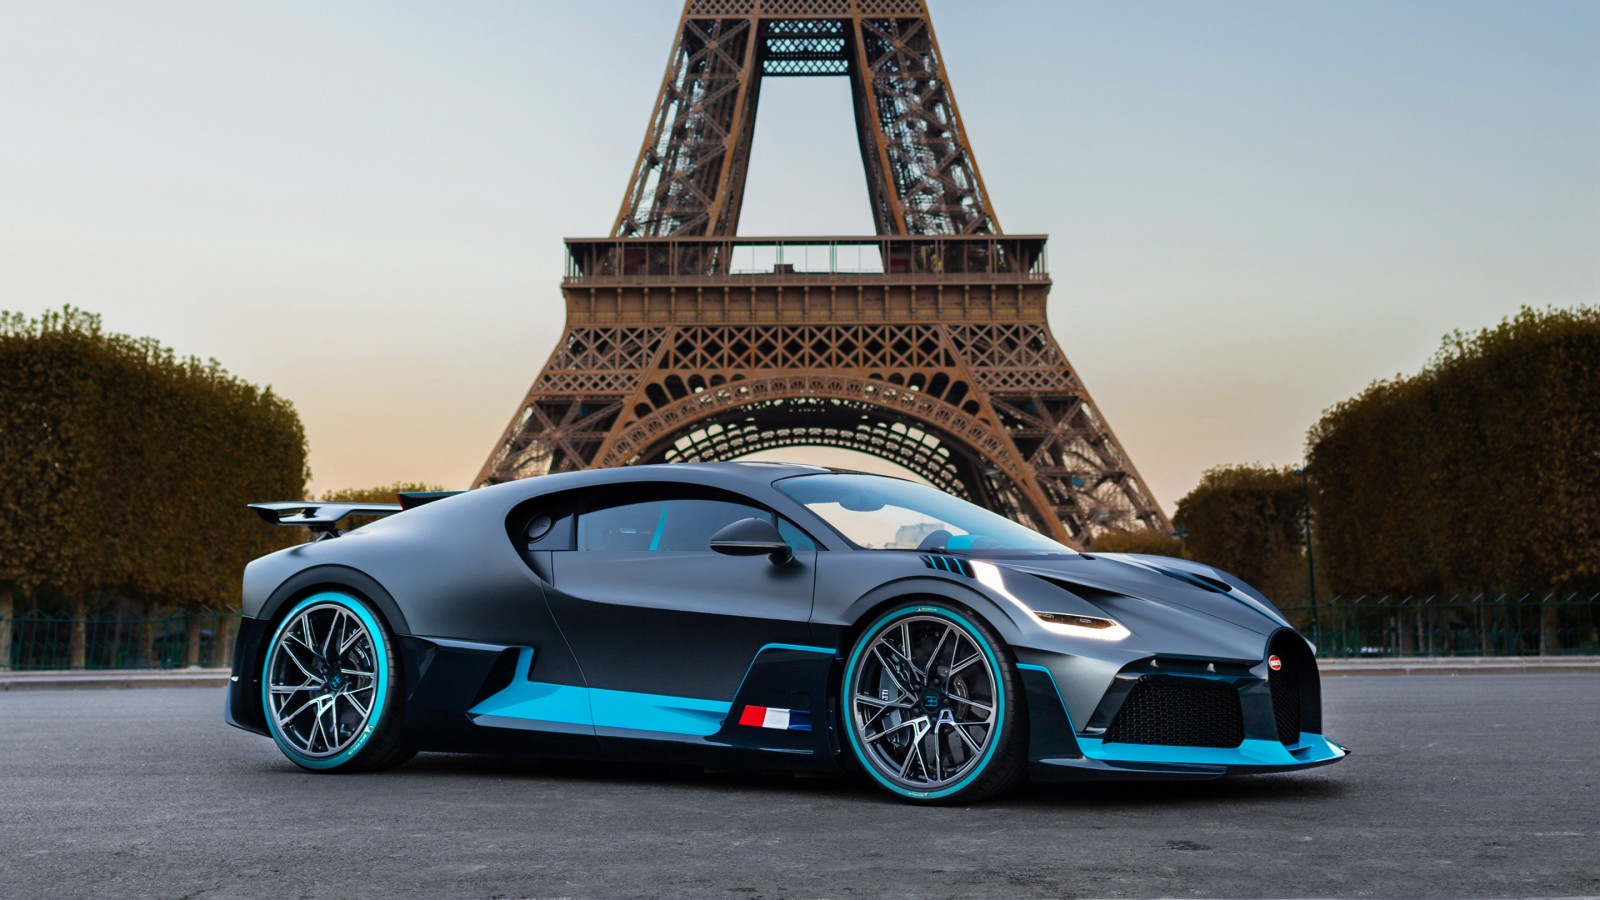 Bugatti Divo In Paris Wallpaper Hd Car Wallpapers Id